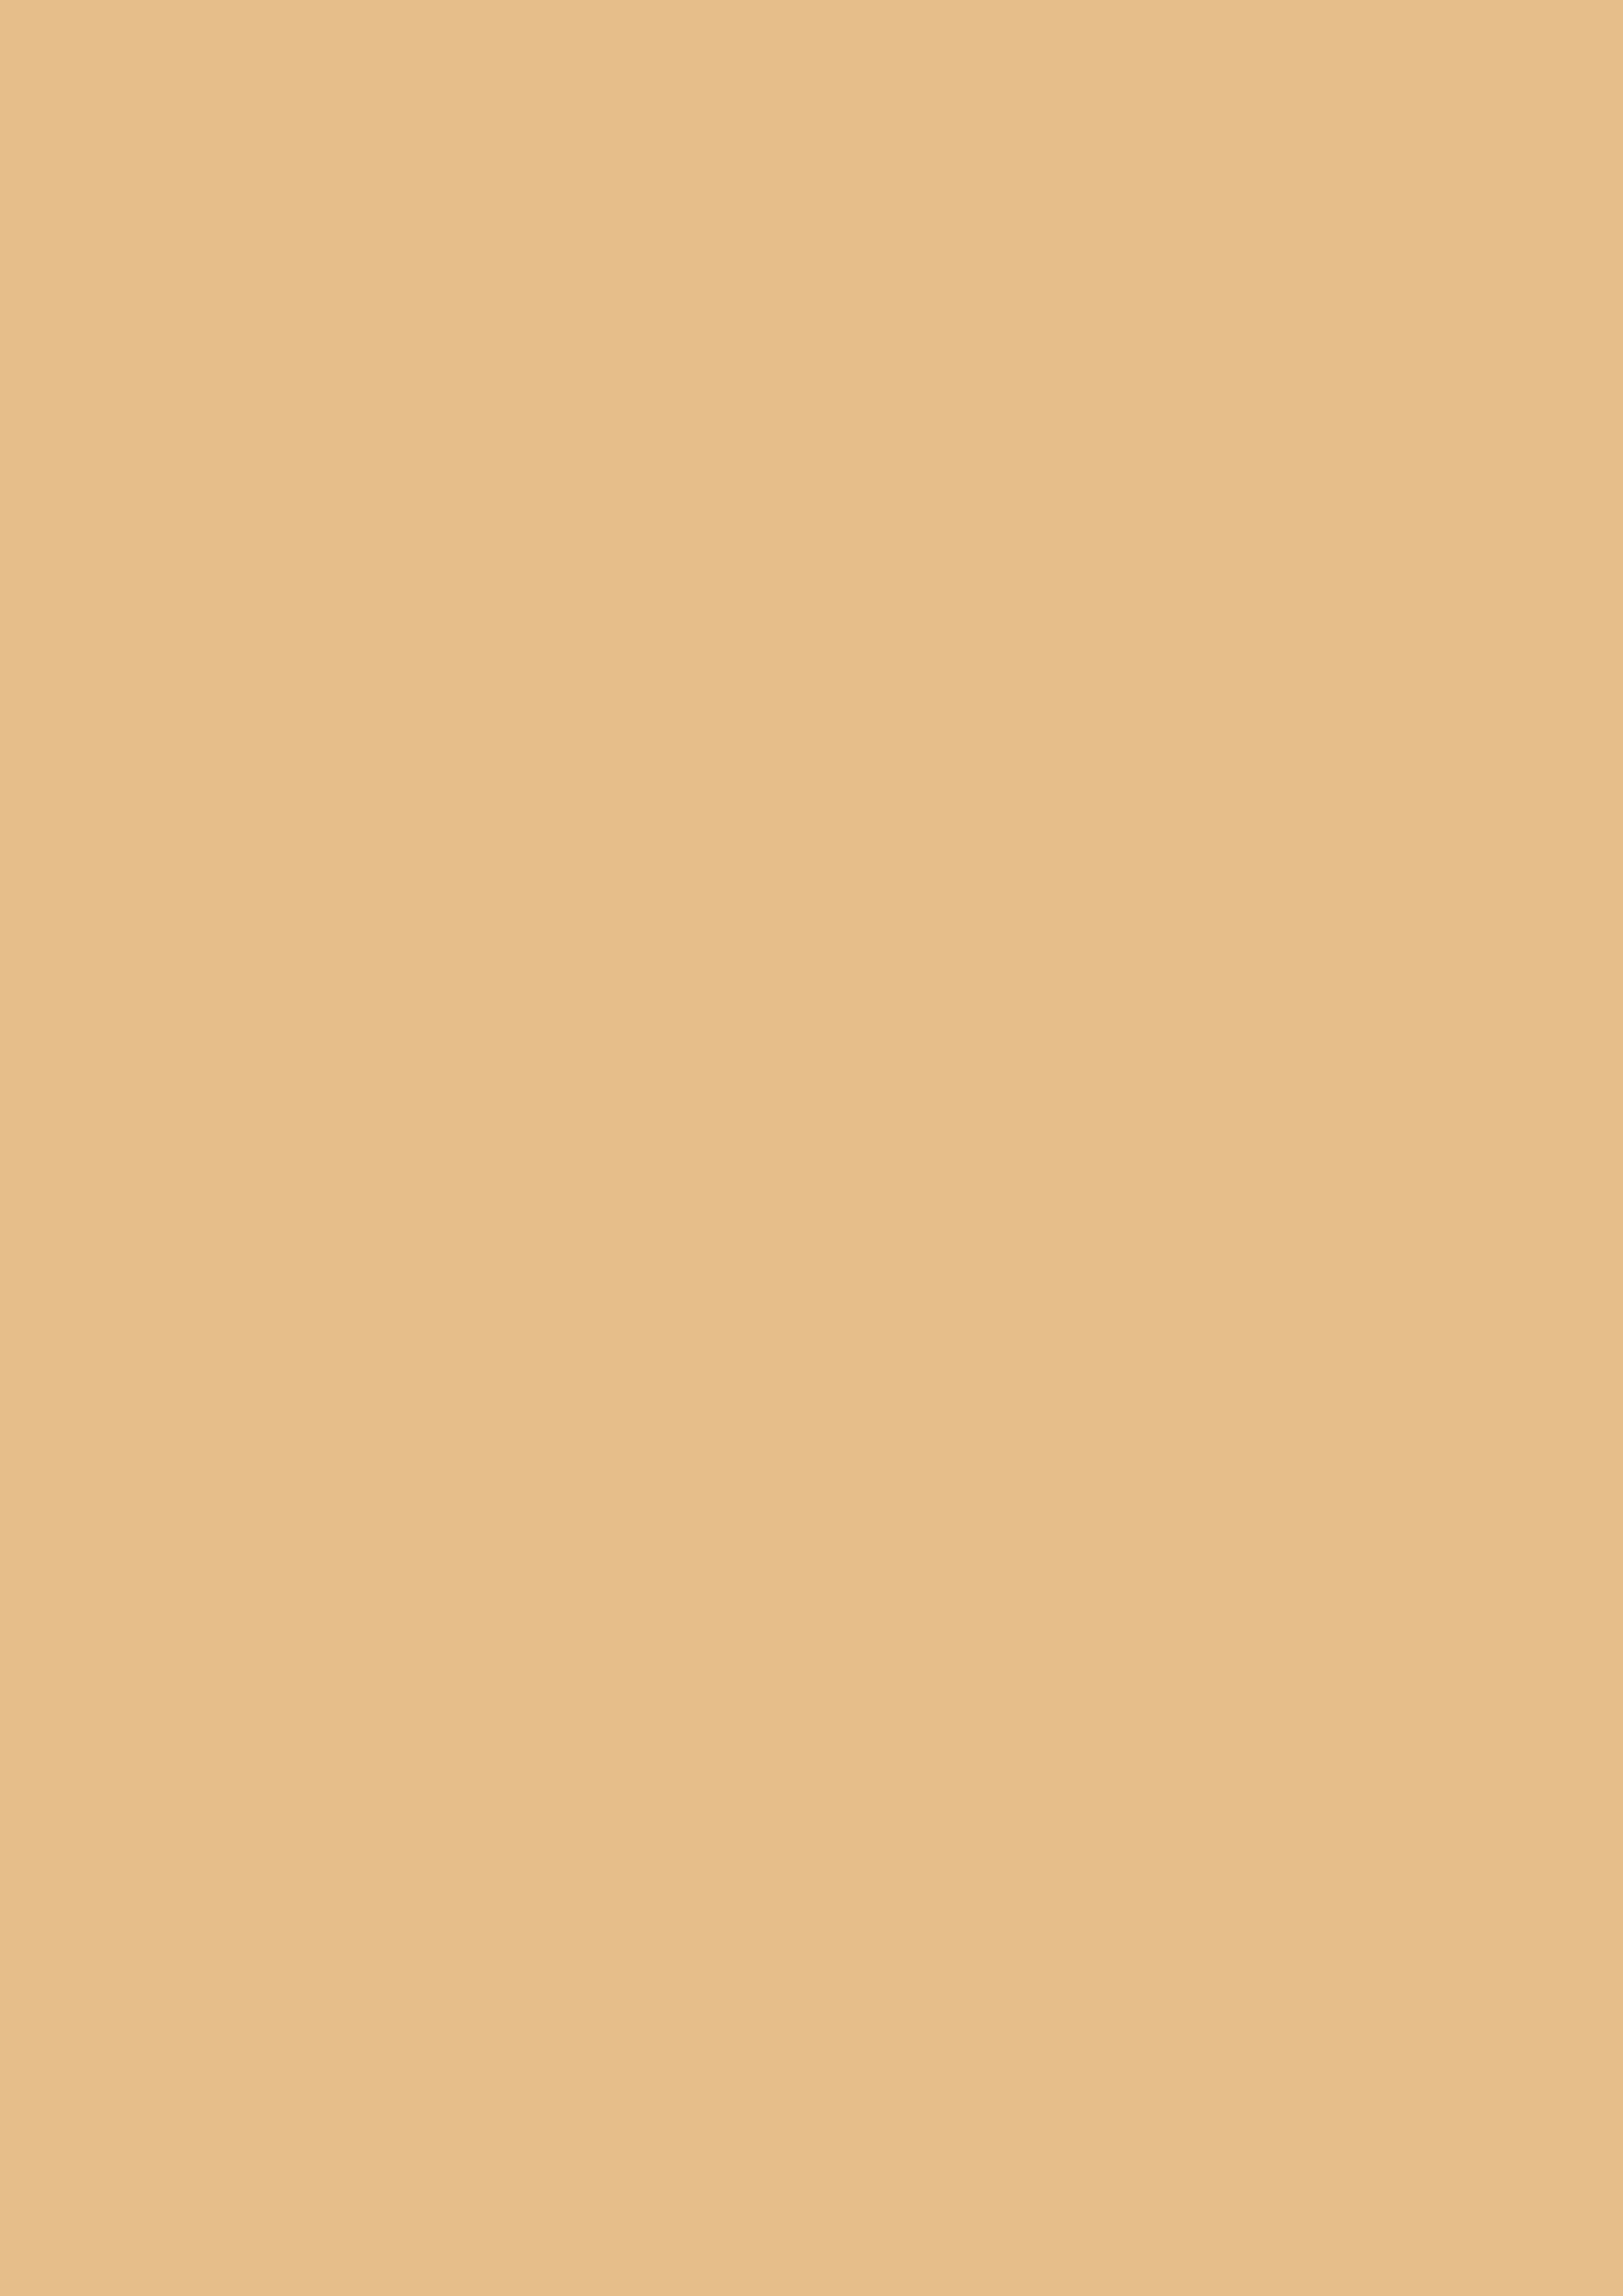 2480x3508 Pale Gold Solid Color Background